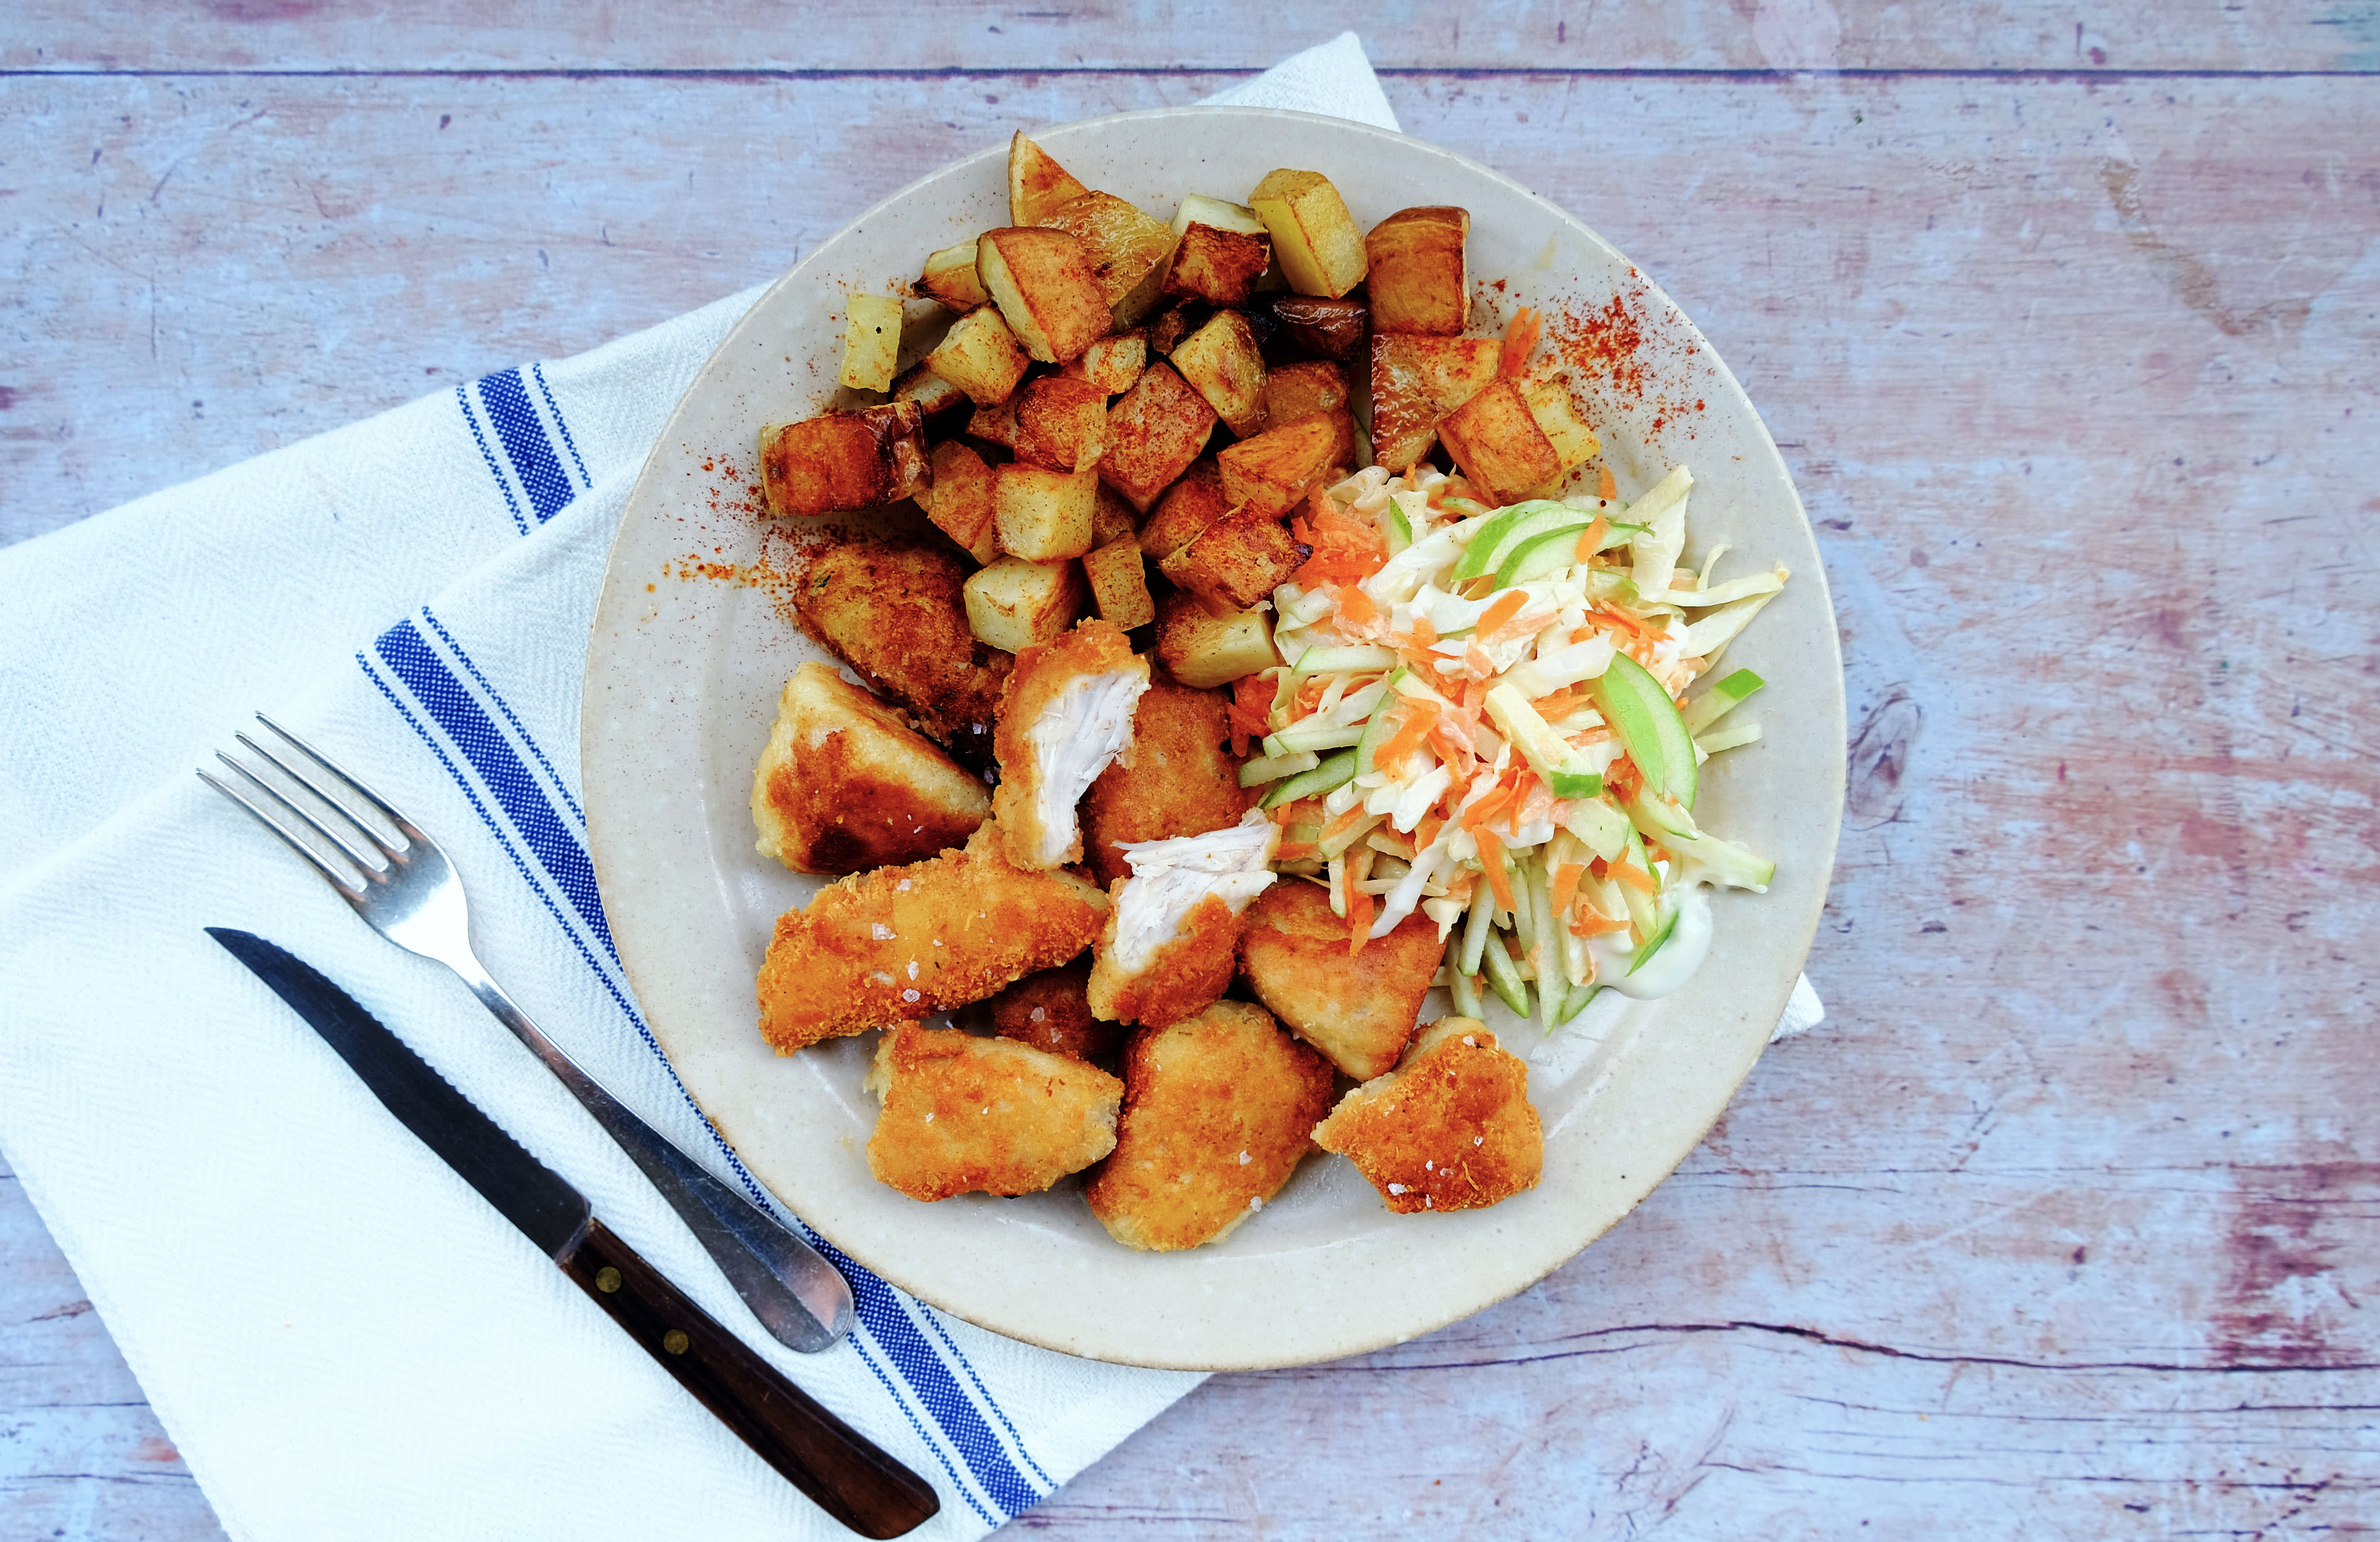 Parmesan Chicken Nuggets with Potato Cubes and Slaw